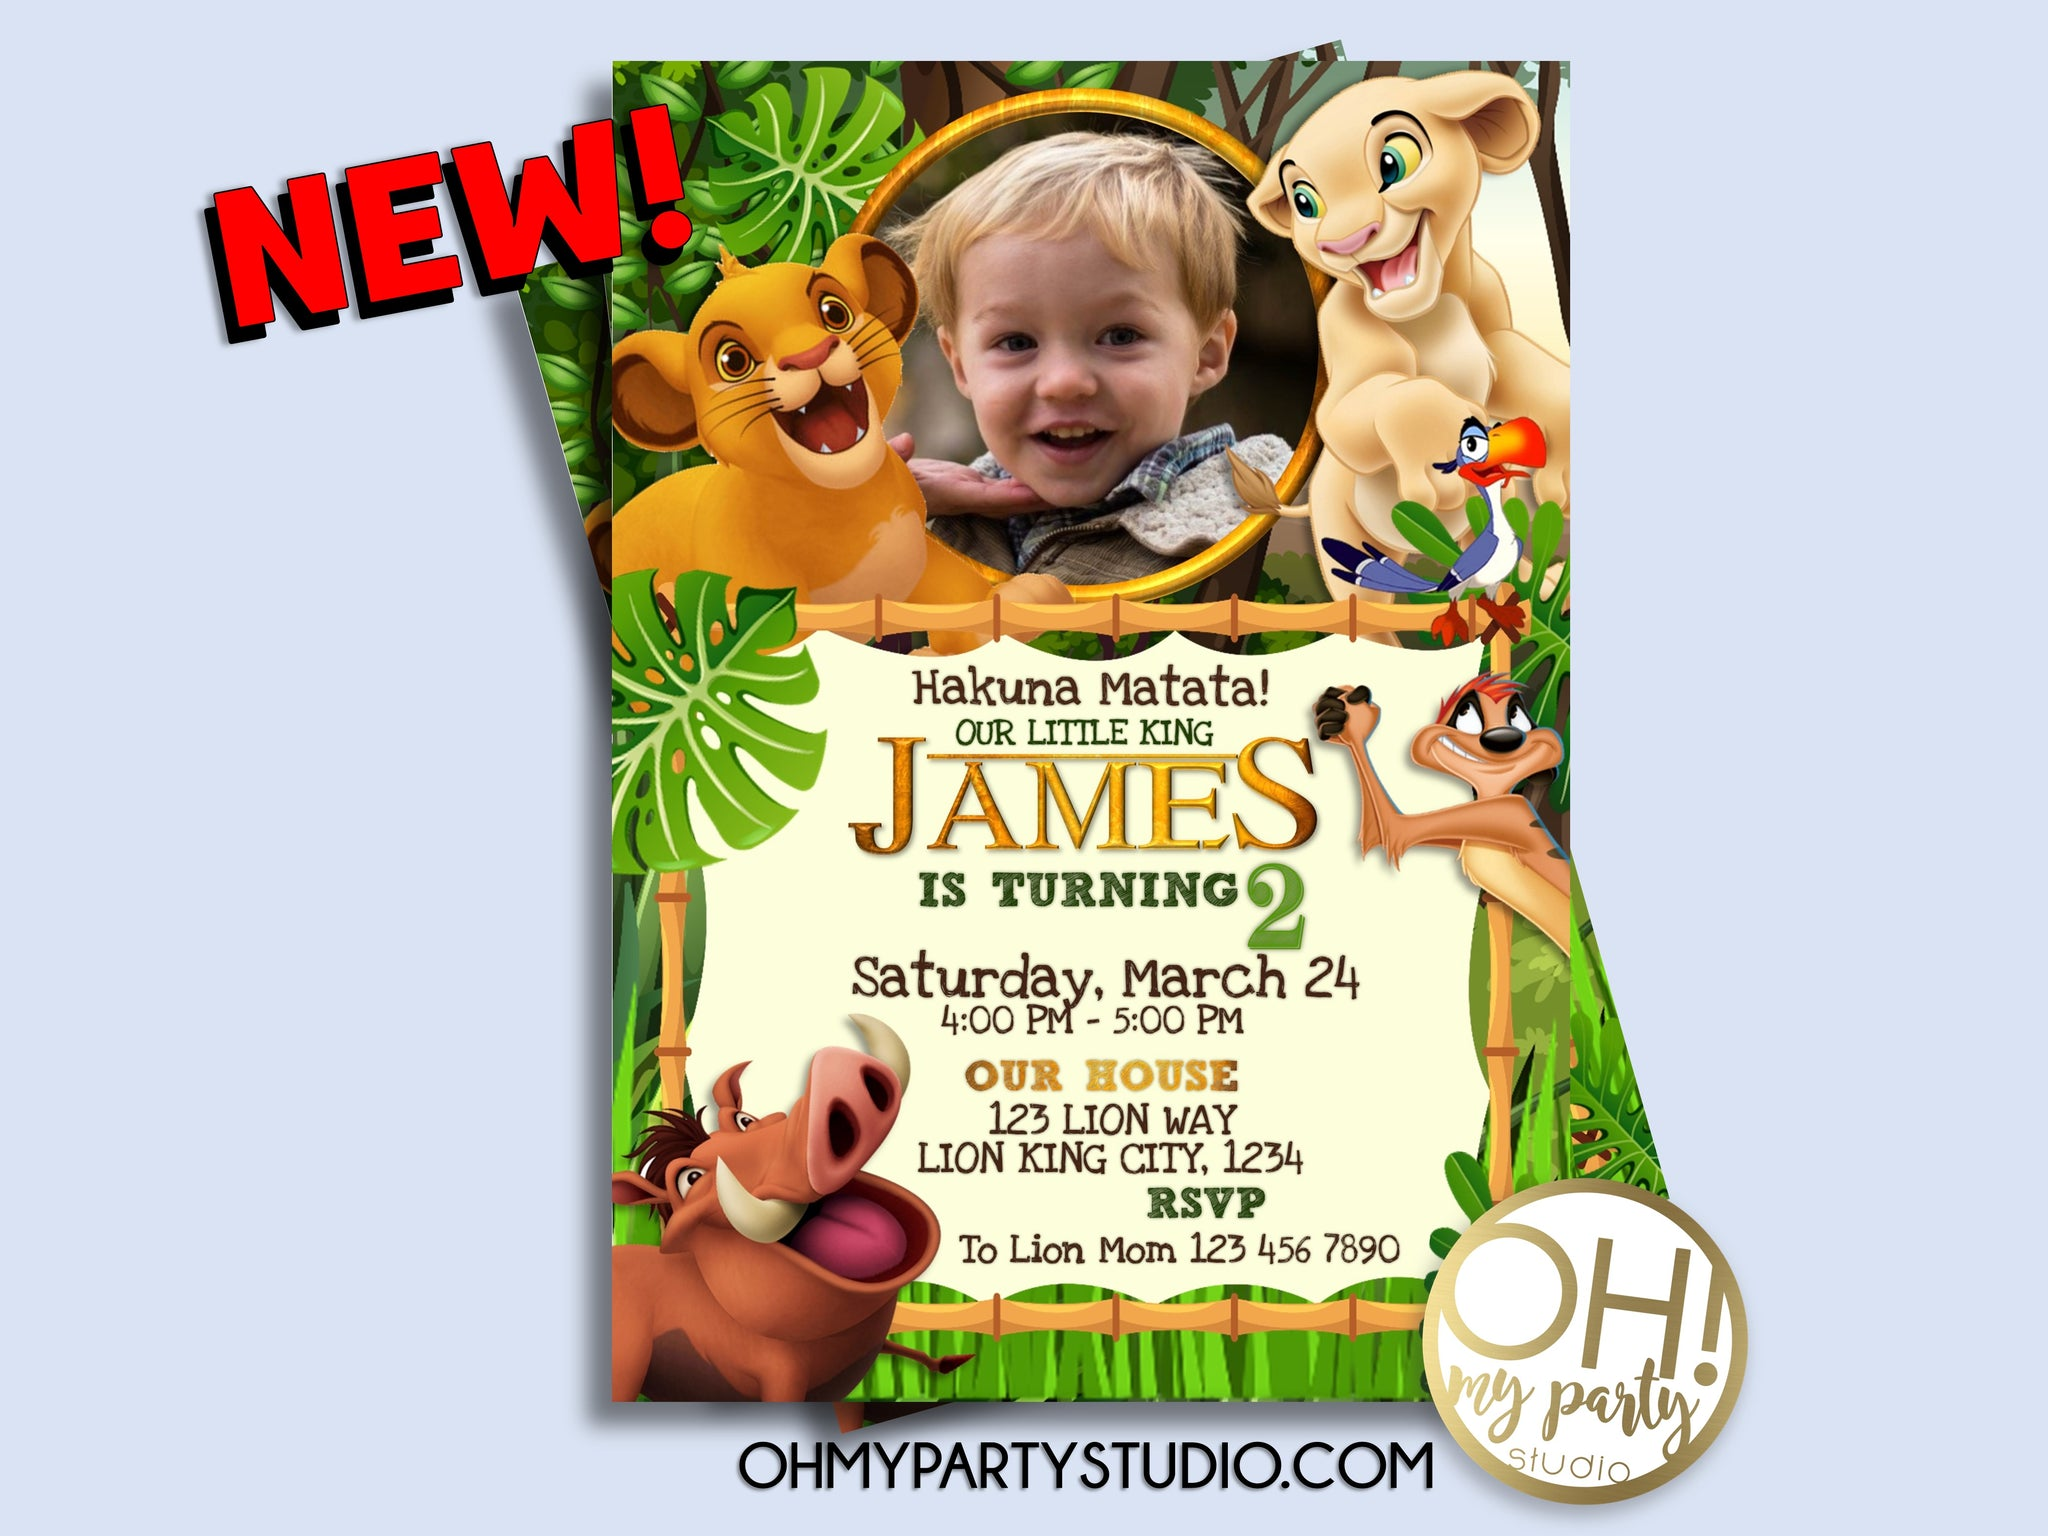 THE LION KING BIRTHDAY, LION KING PARTY IDEAS, THE LION KING INVITATIONS, THE LION KING BIRTHDAY INVITATIONS, THE LION KING BIRTHDAY PARTY, THE LION KING INVITE, THE LION KING INVITATION, THE LION KING INVITE, THE LION KING CARD, THE LION KING BIRTHDAY, THE LION PARTY, THE LION KING BIRTHDAY, THE LION KING PARTY PRINTABLES, THE LION KING PARTY SUPPLIES, REY LEÓN INVITACIÓN, REY LEON INVITACION, THE LION KING DIGITAL INVITATION, THE LION KING INVITATION WITH PHOTO